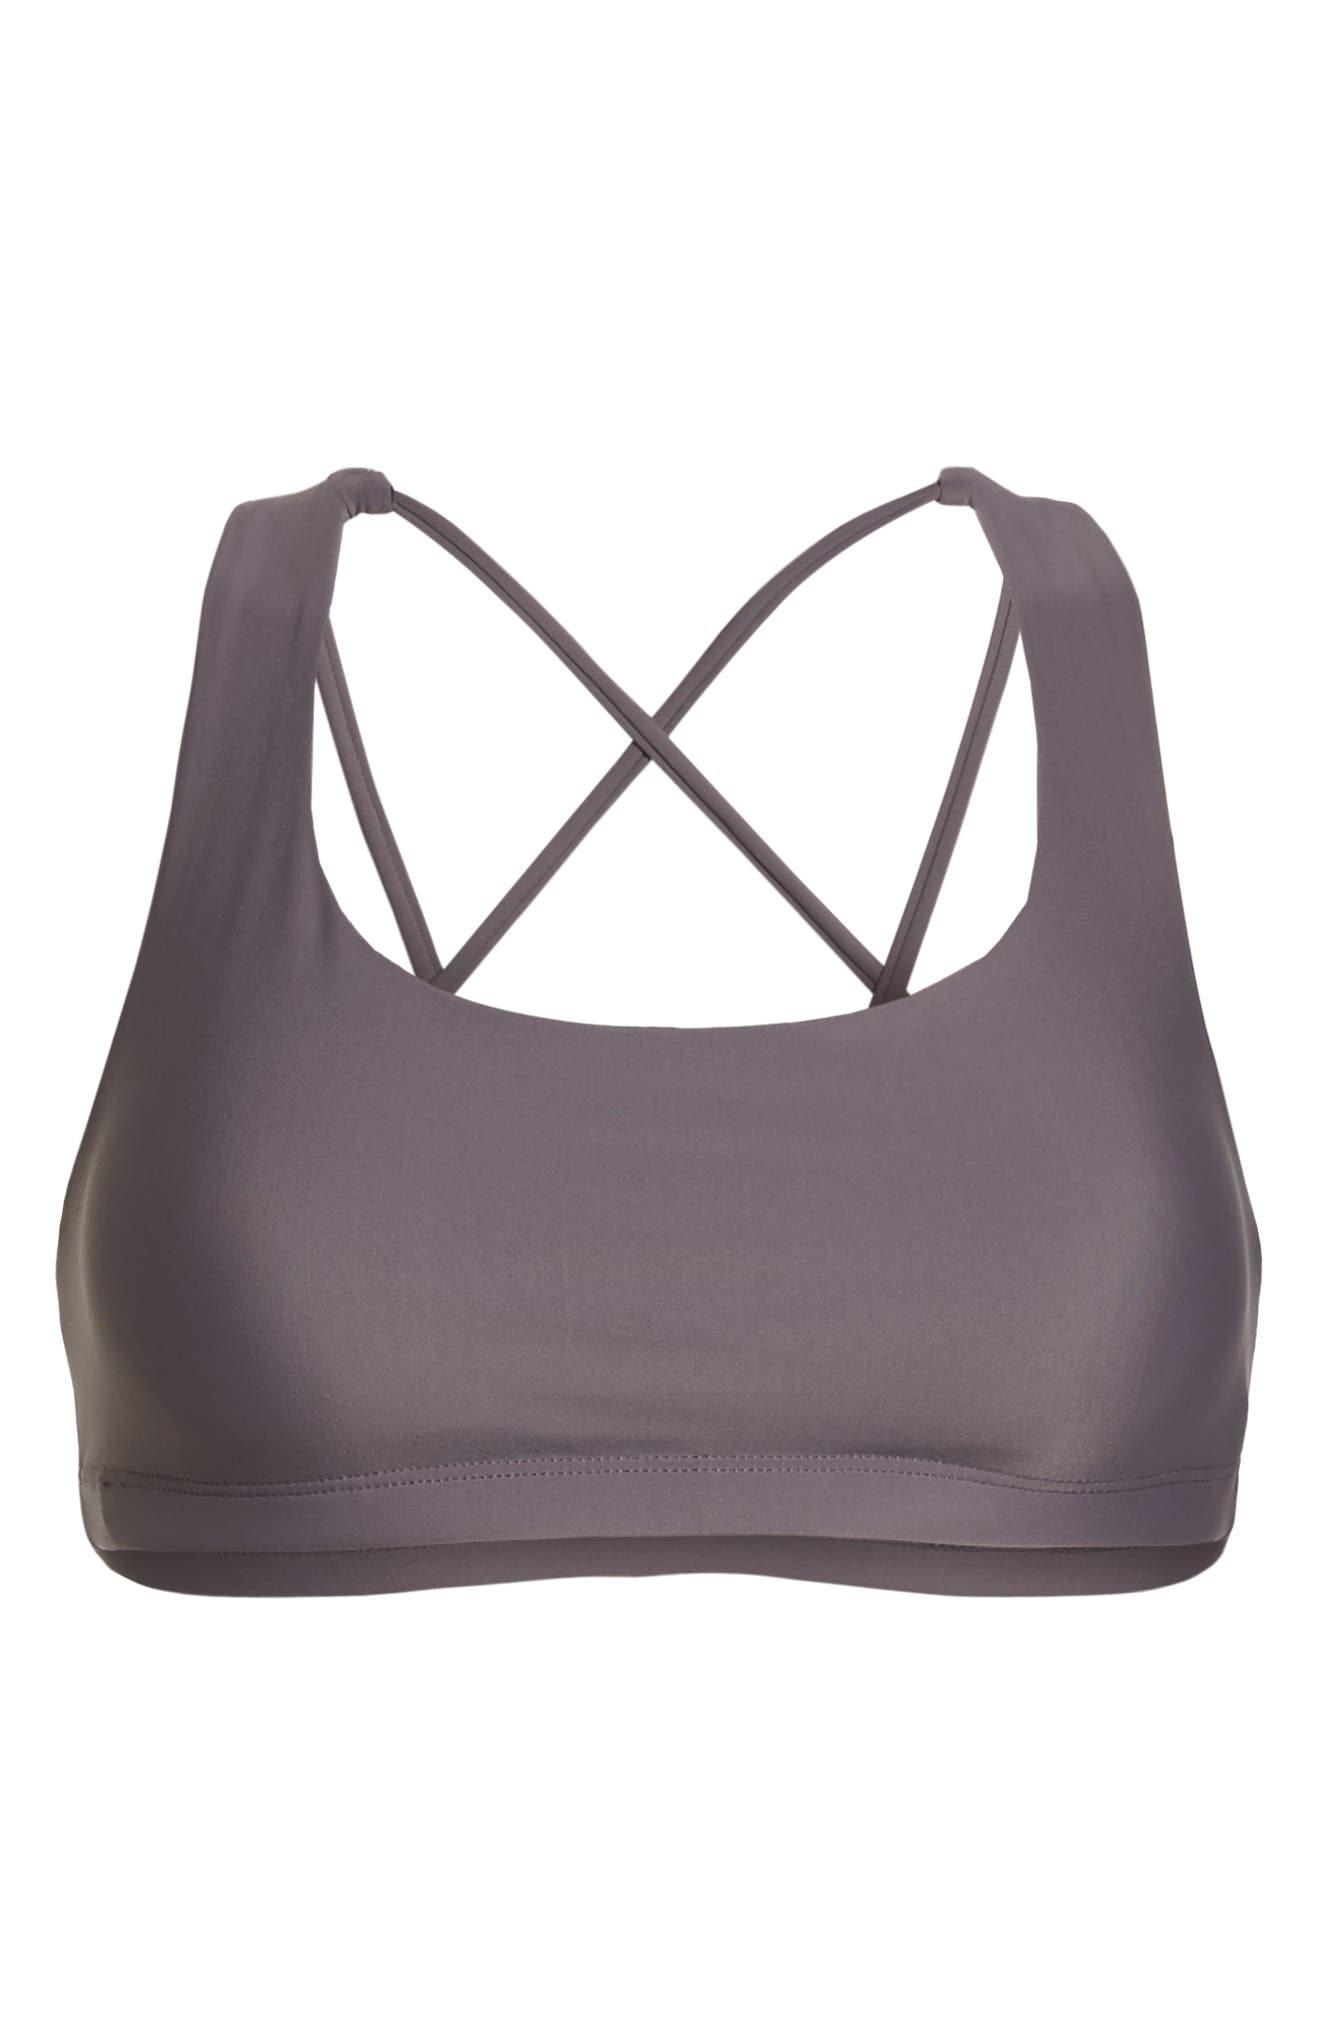 Mudra Bra,                             Alternate thumbnail 6, color,                             054